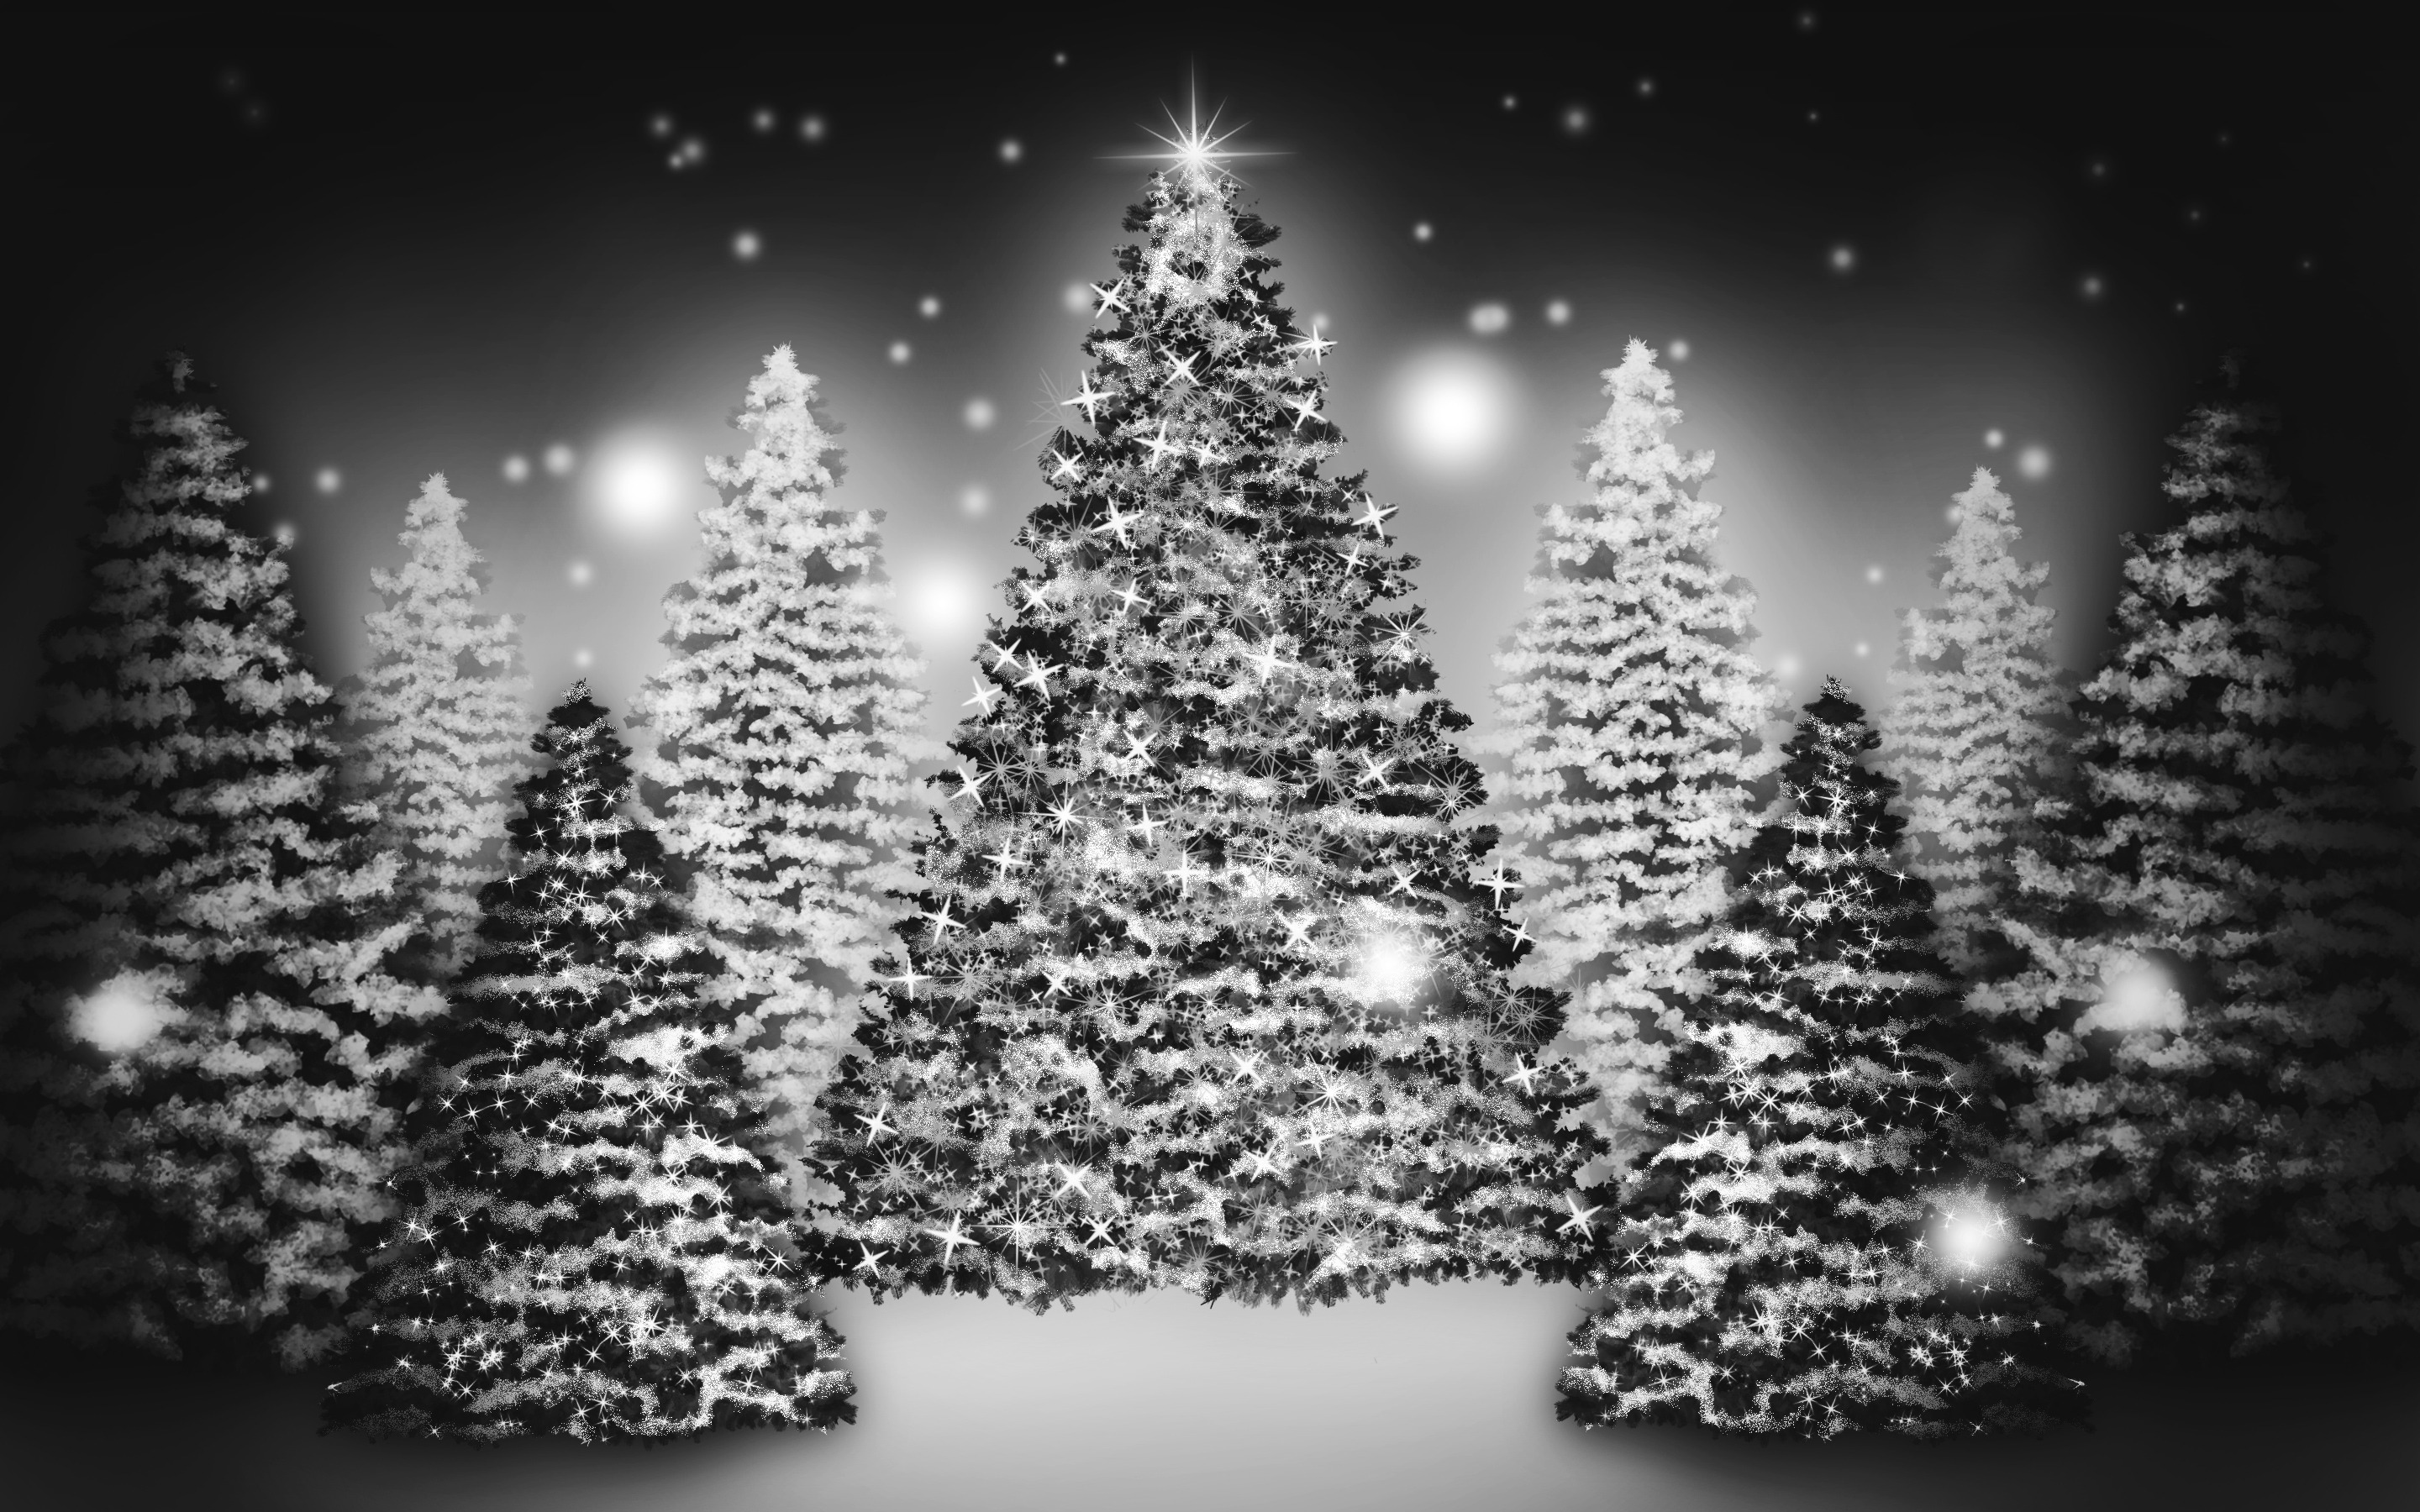 White Christmas Tree Wallpapers Christmas Day 1291953 Hd Wallpaper Backgrounds Download